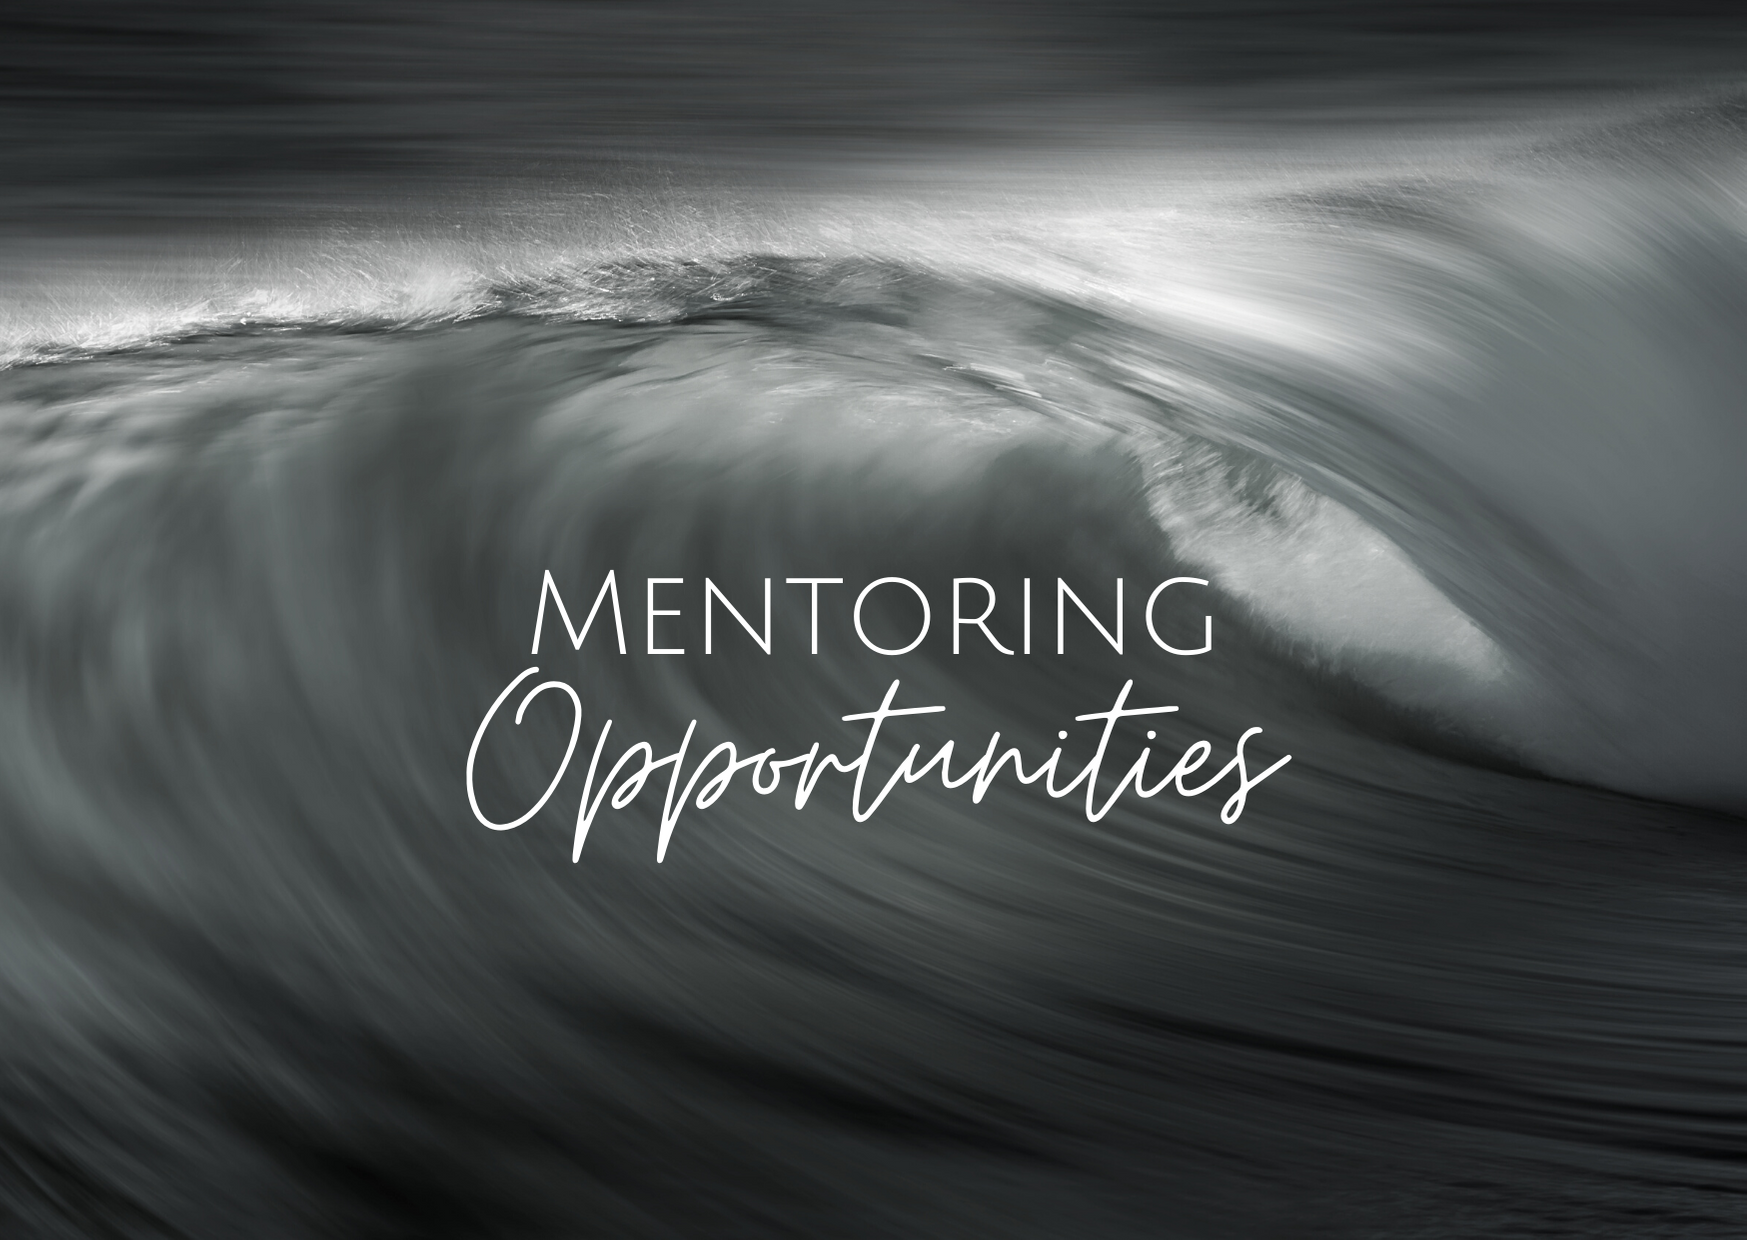 Conscious Business Mentoring Opportunities